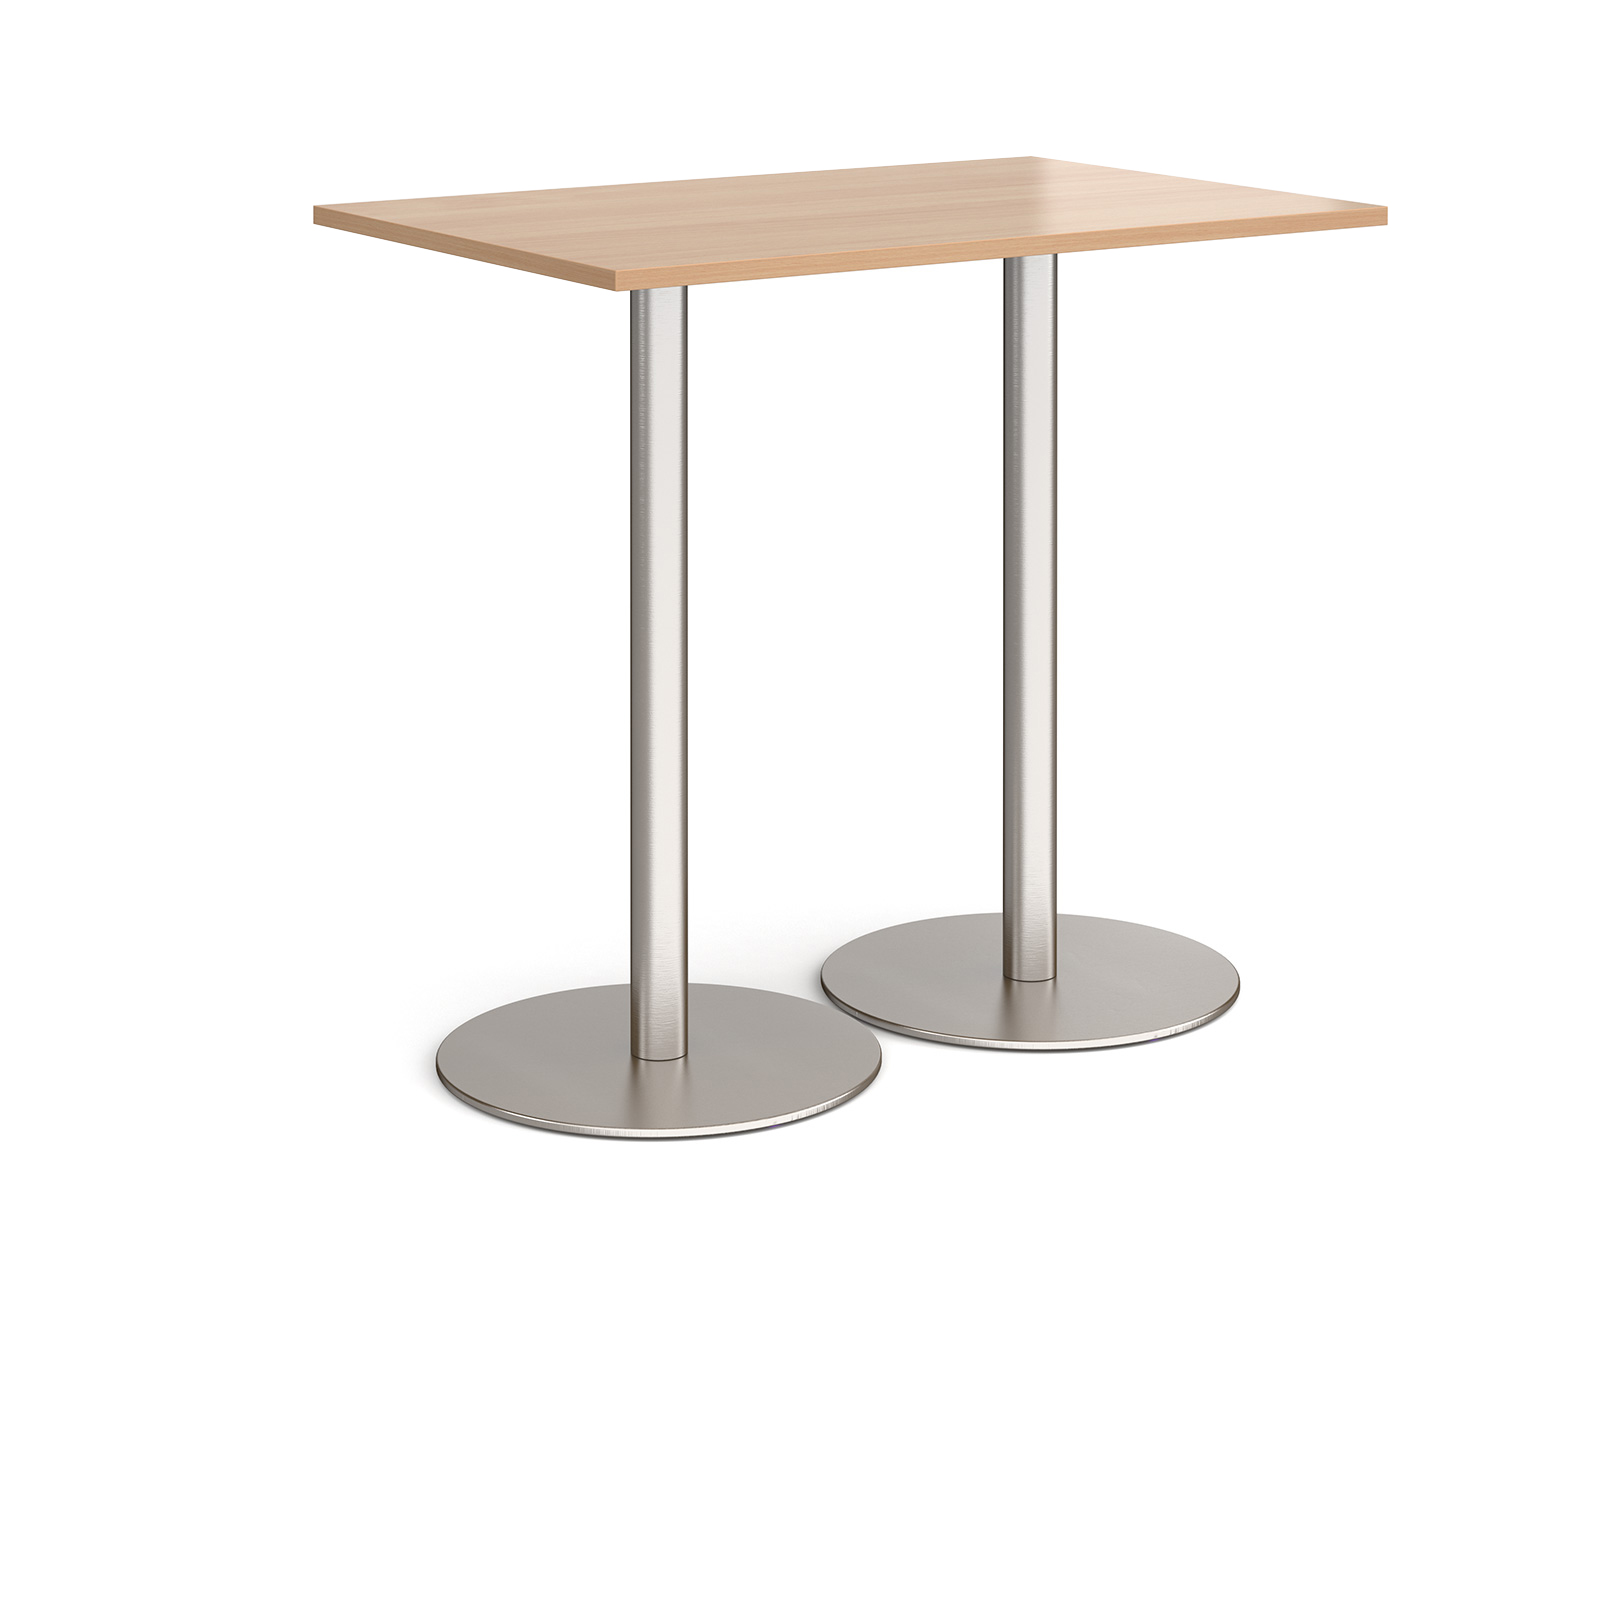 Canteen / Dining Monza rectangular poseur table with round bases